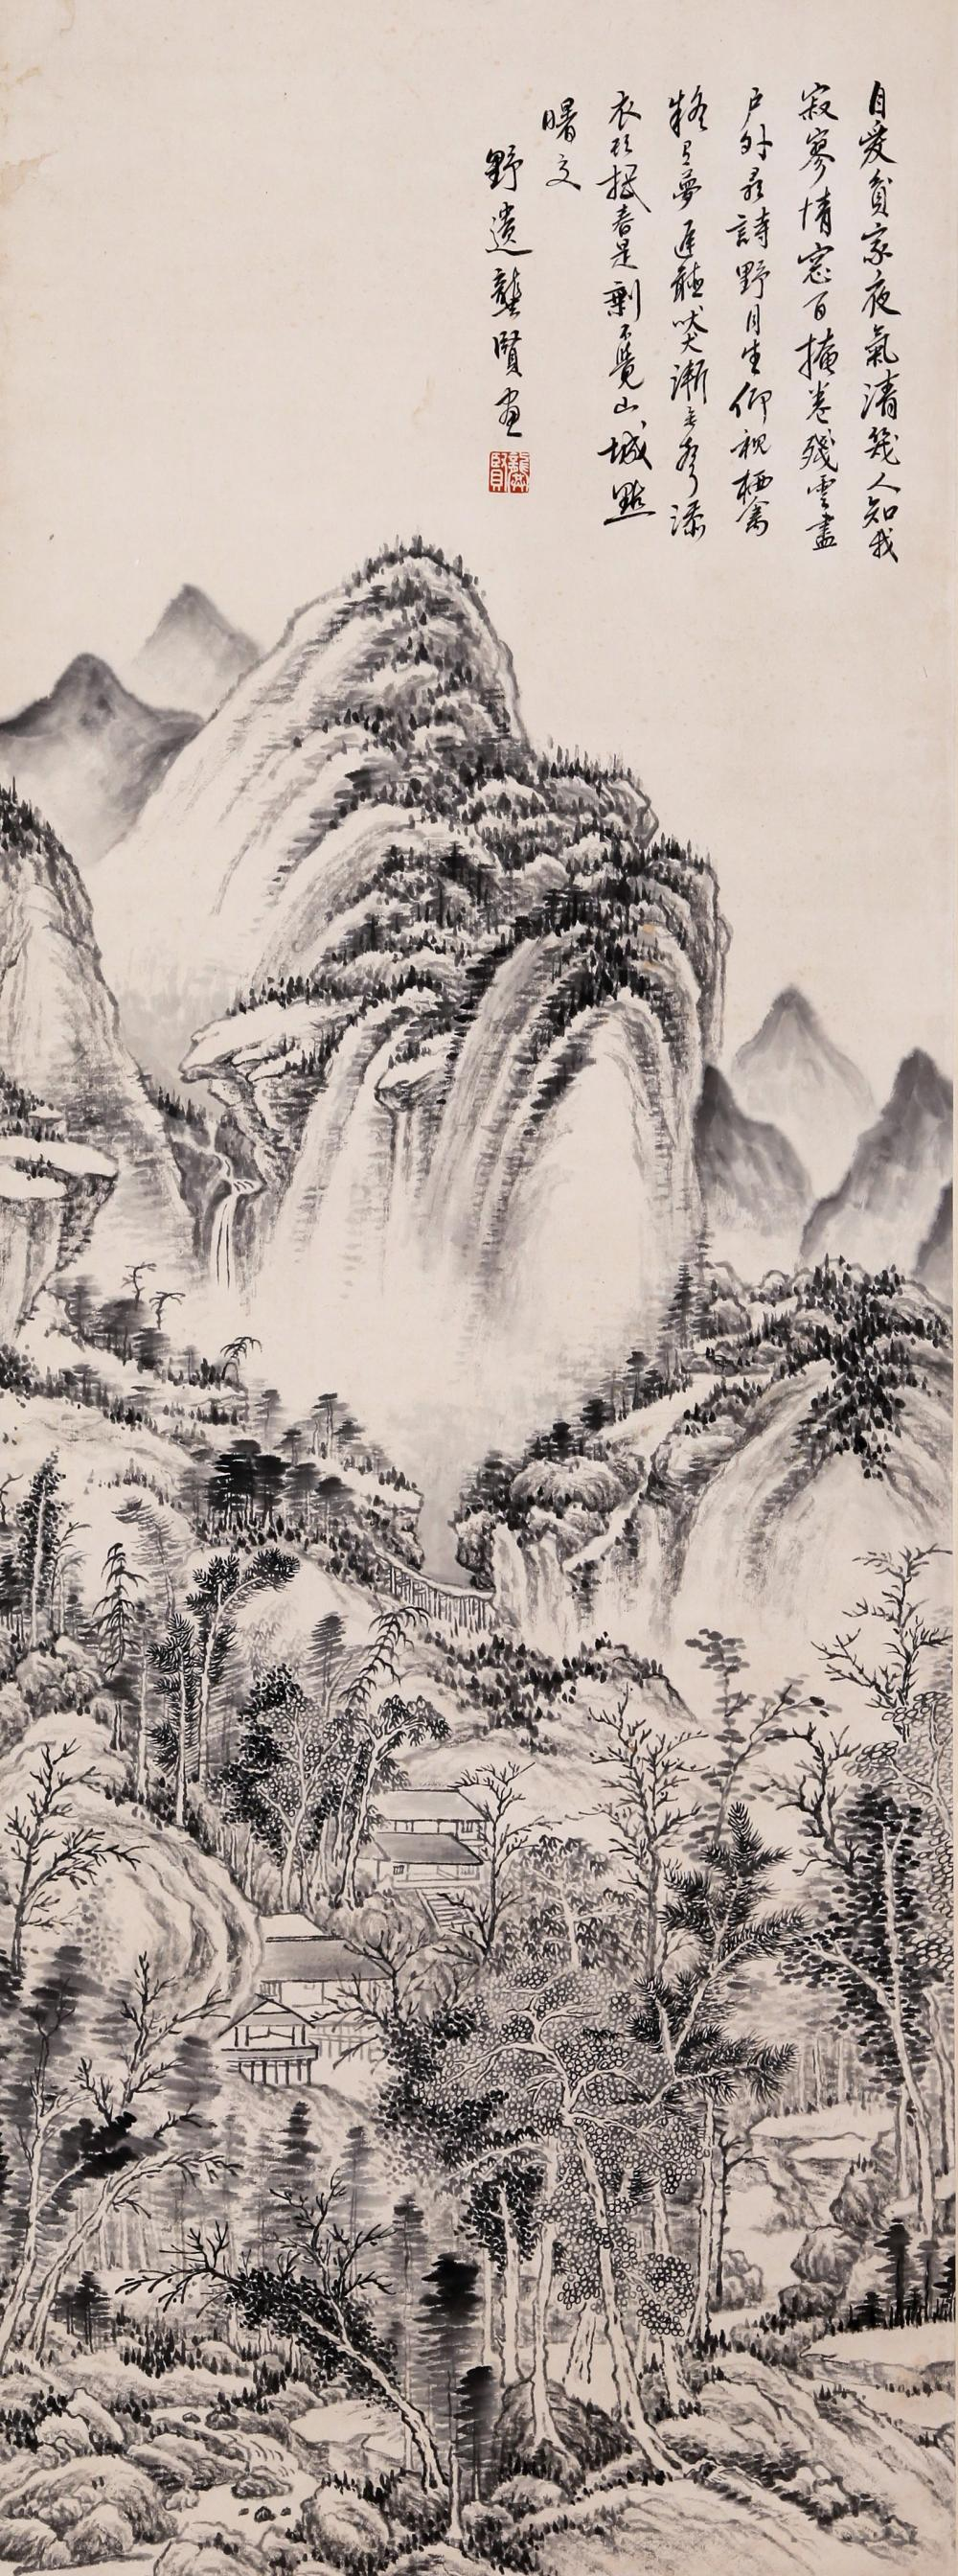 CHINESE INK PAINTING OF VILLAGE IN MOUNTAIN